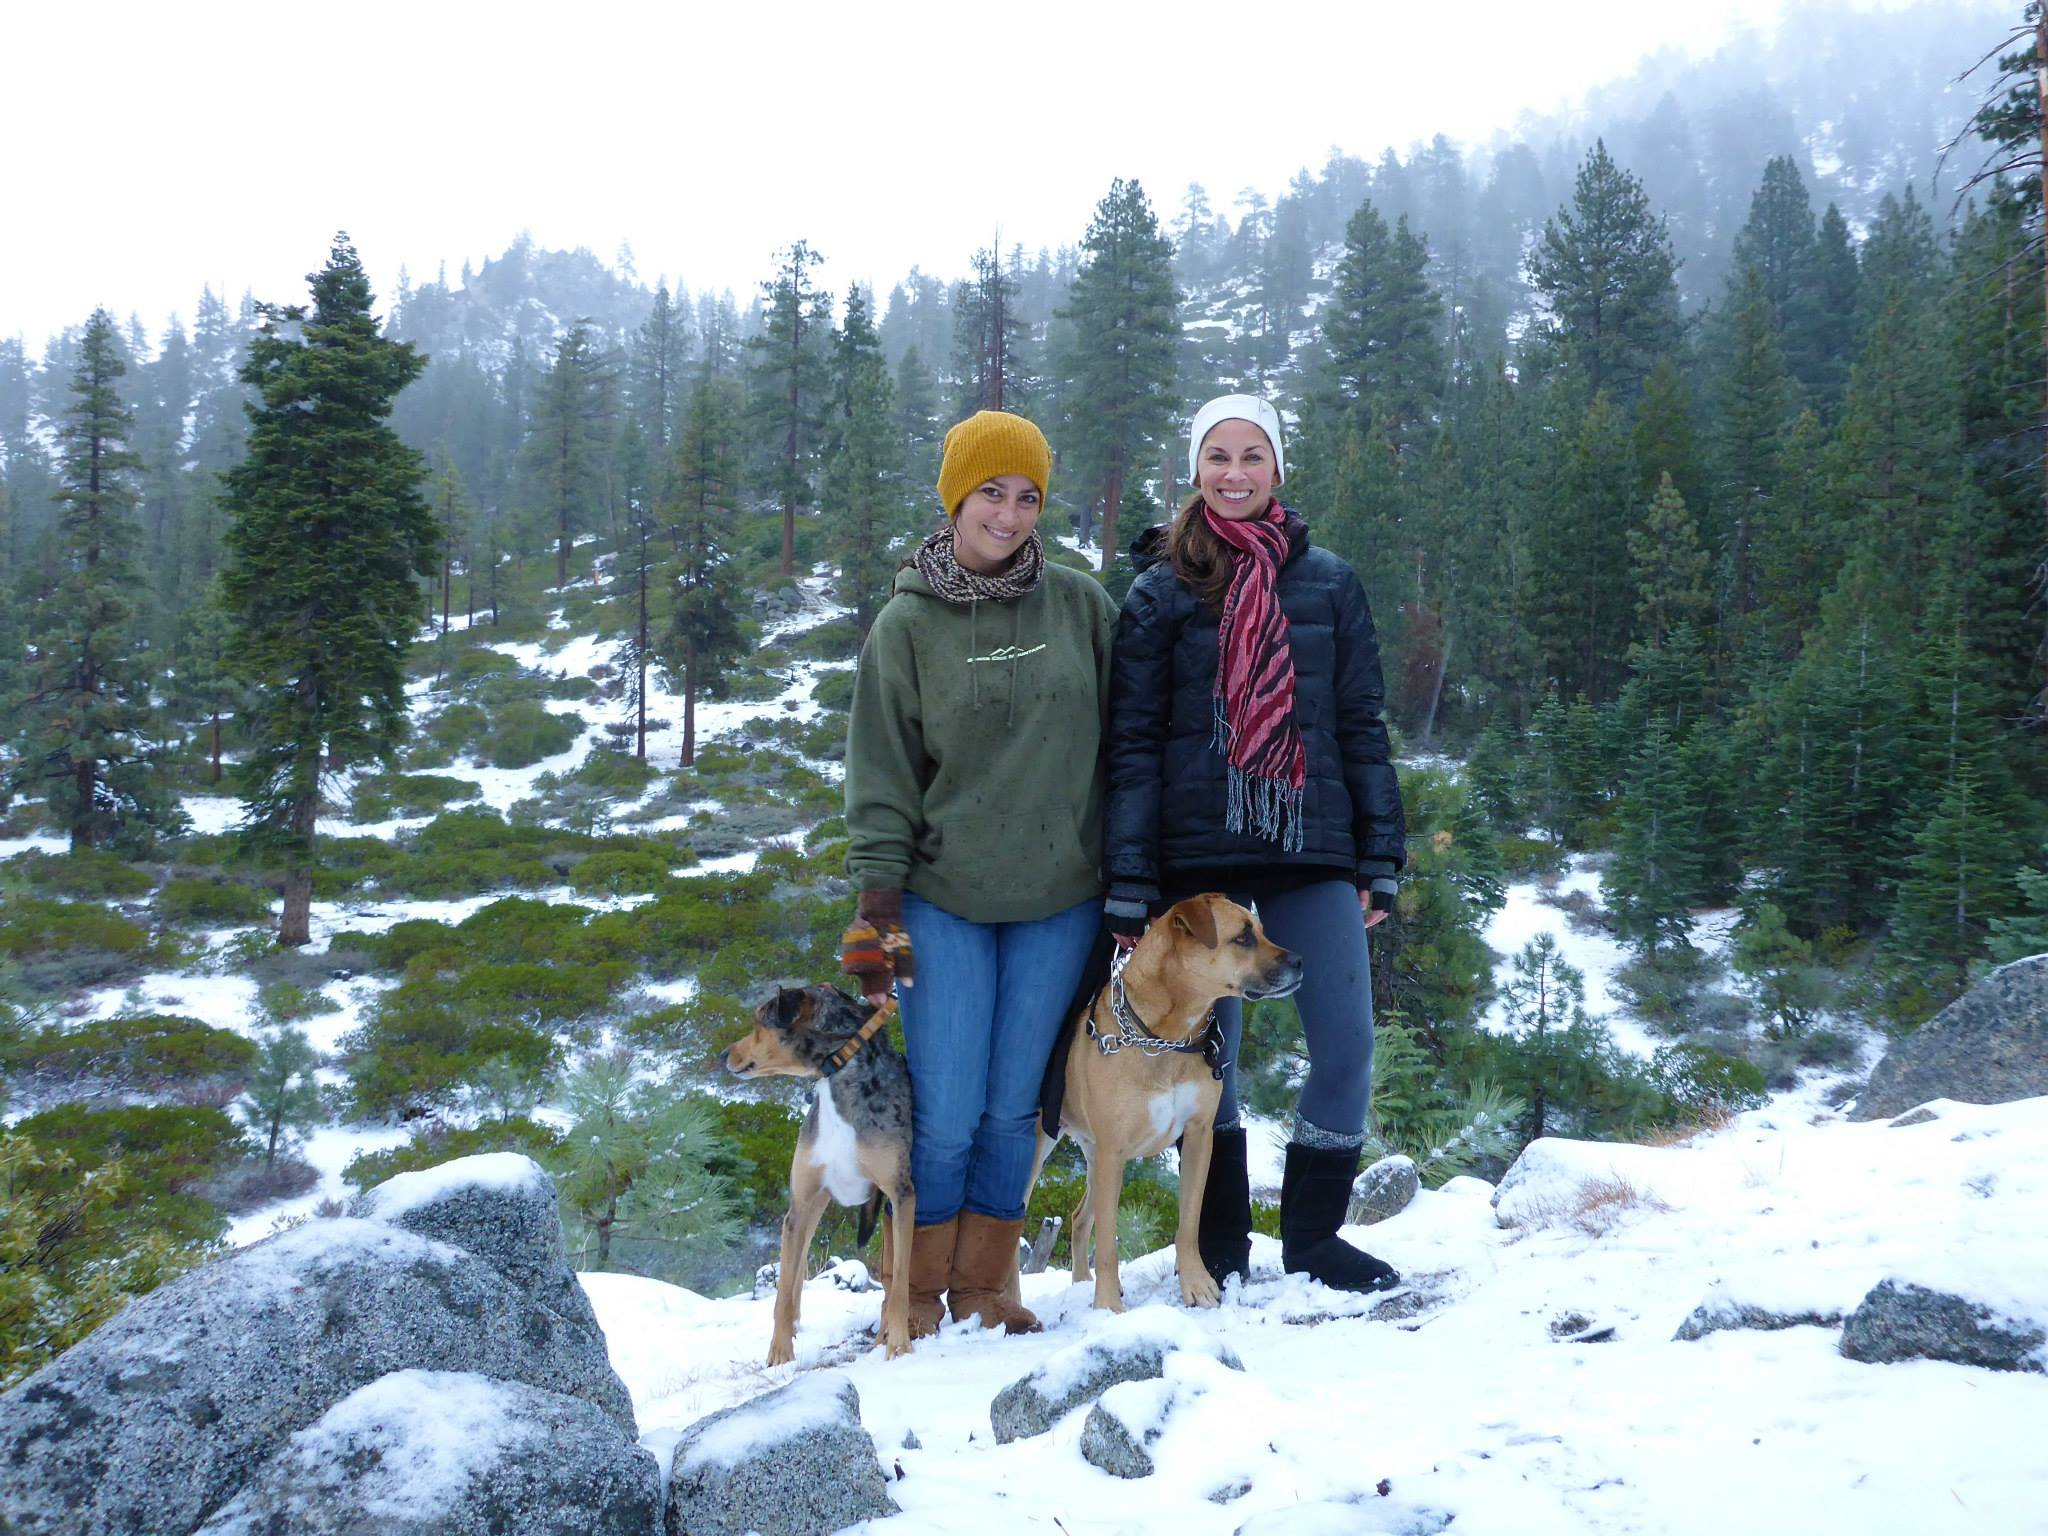 My Sister and I With Our Dogs